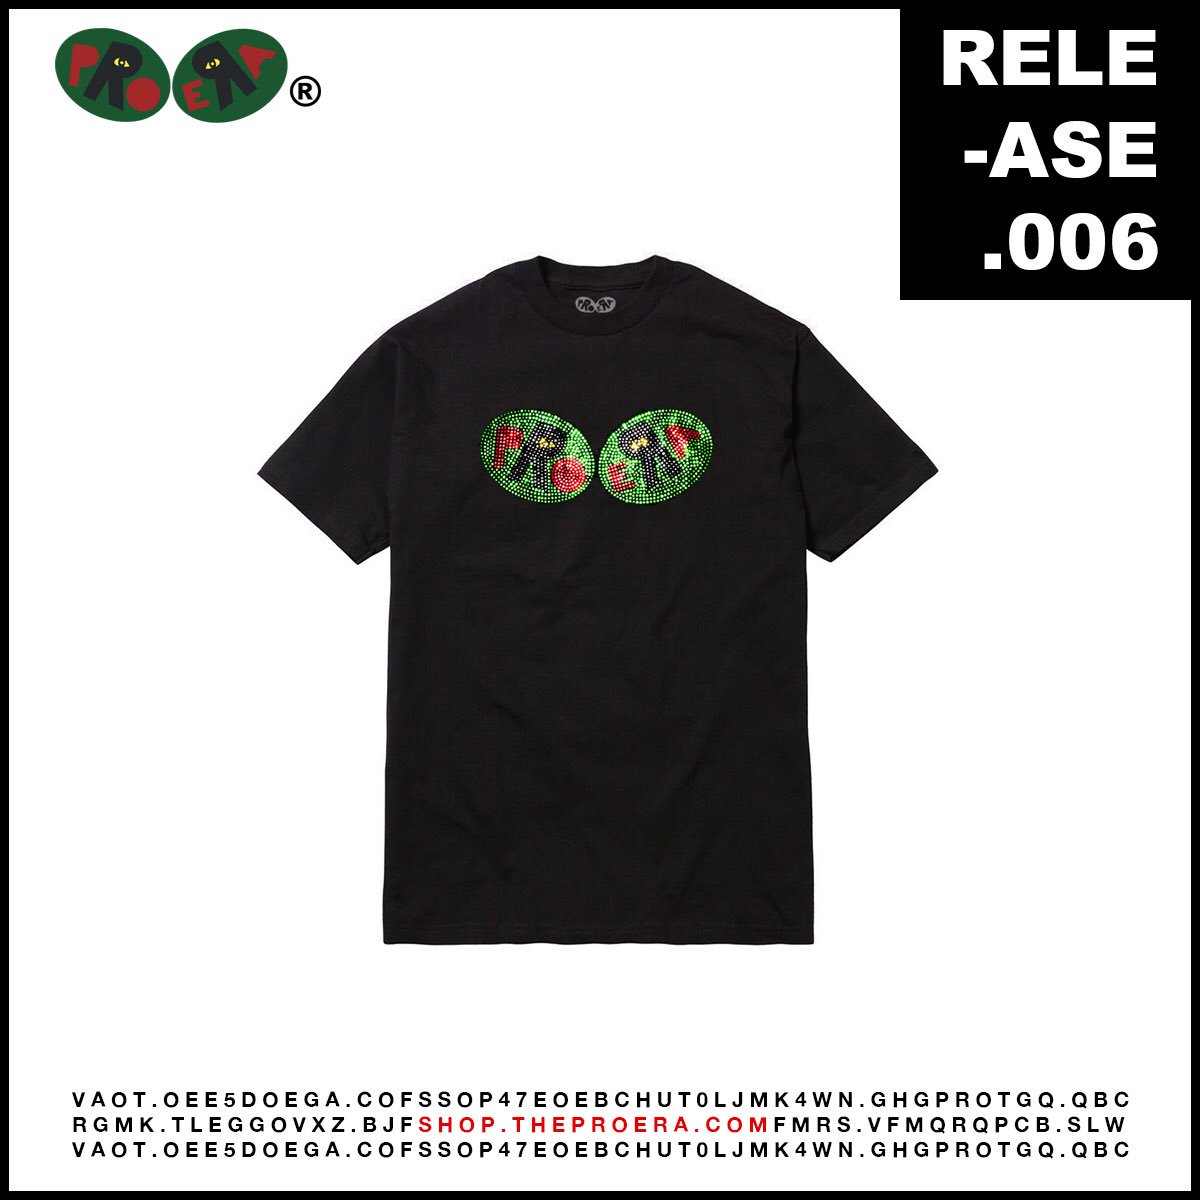 ec0569eff6670 New Pro Era studded logo tees available right now on  http   shop.theproera.com ! Limited so get them before they re gone.